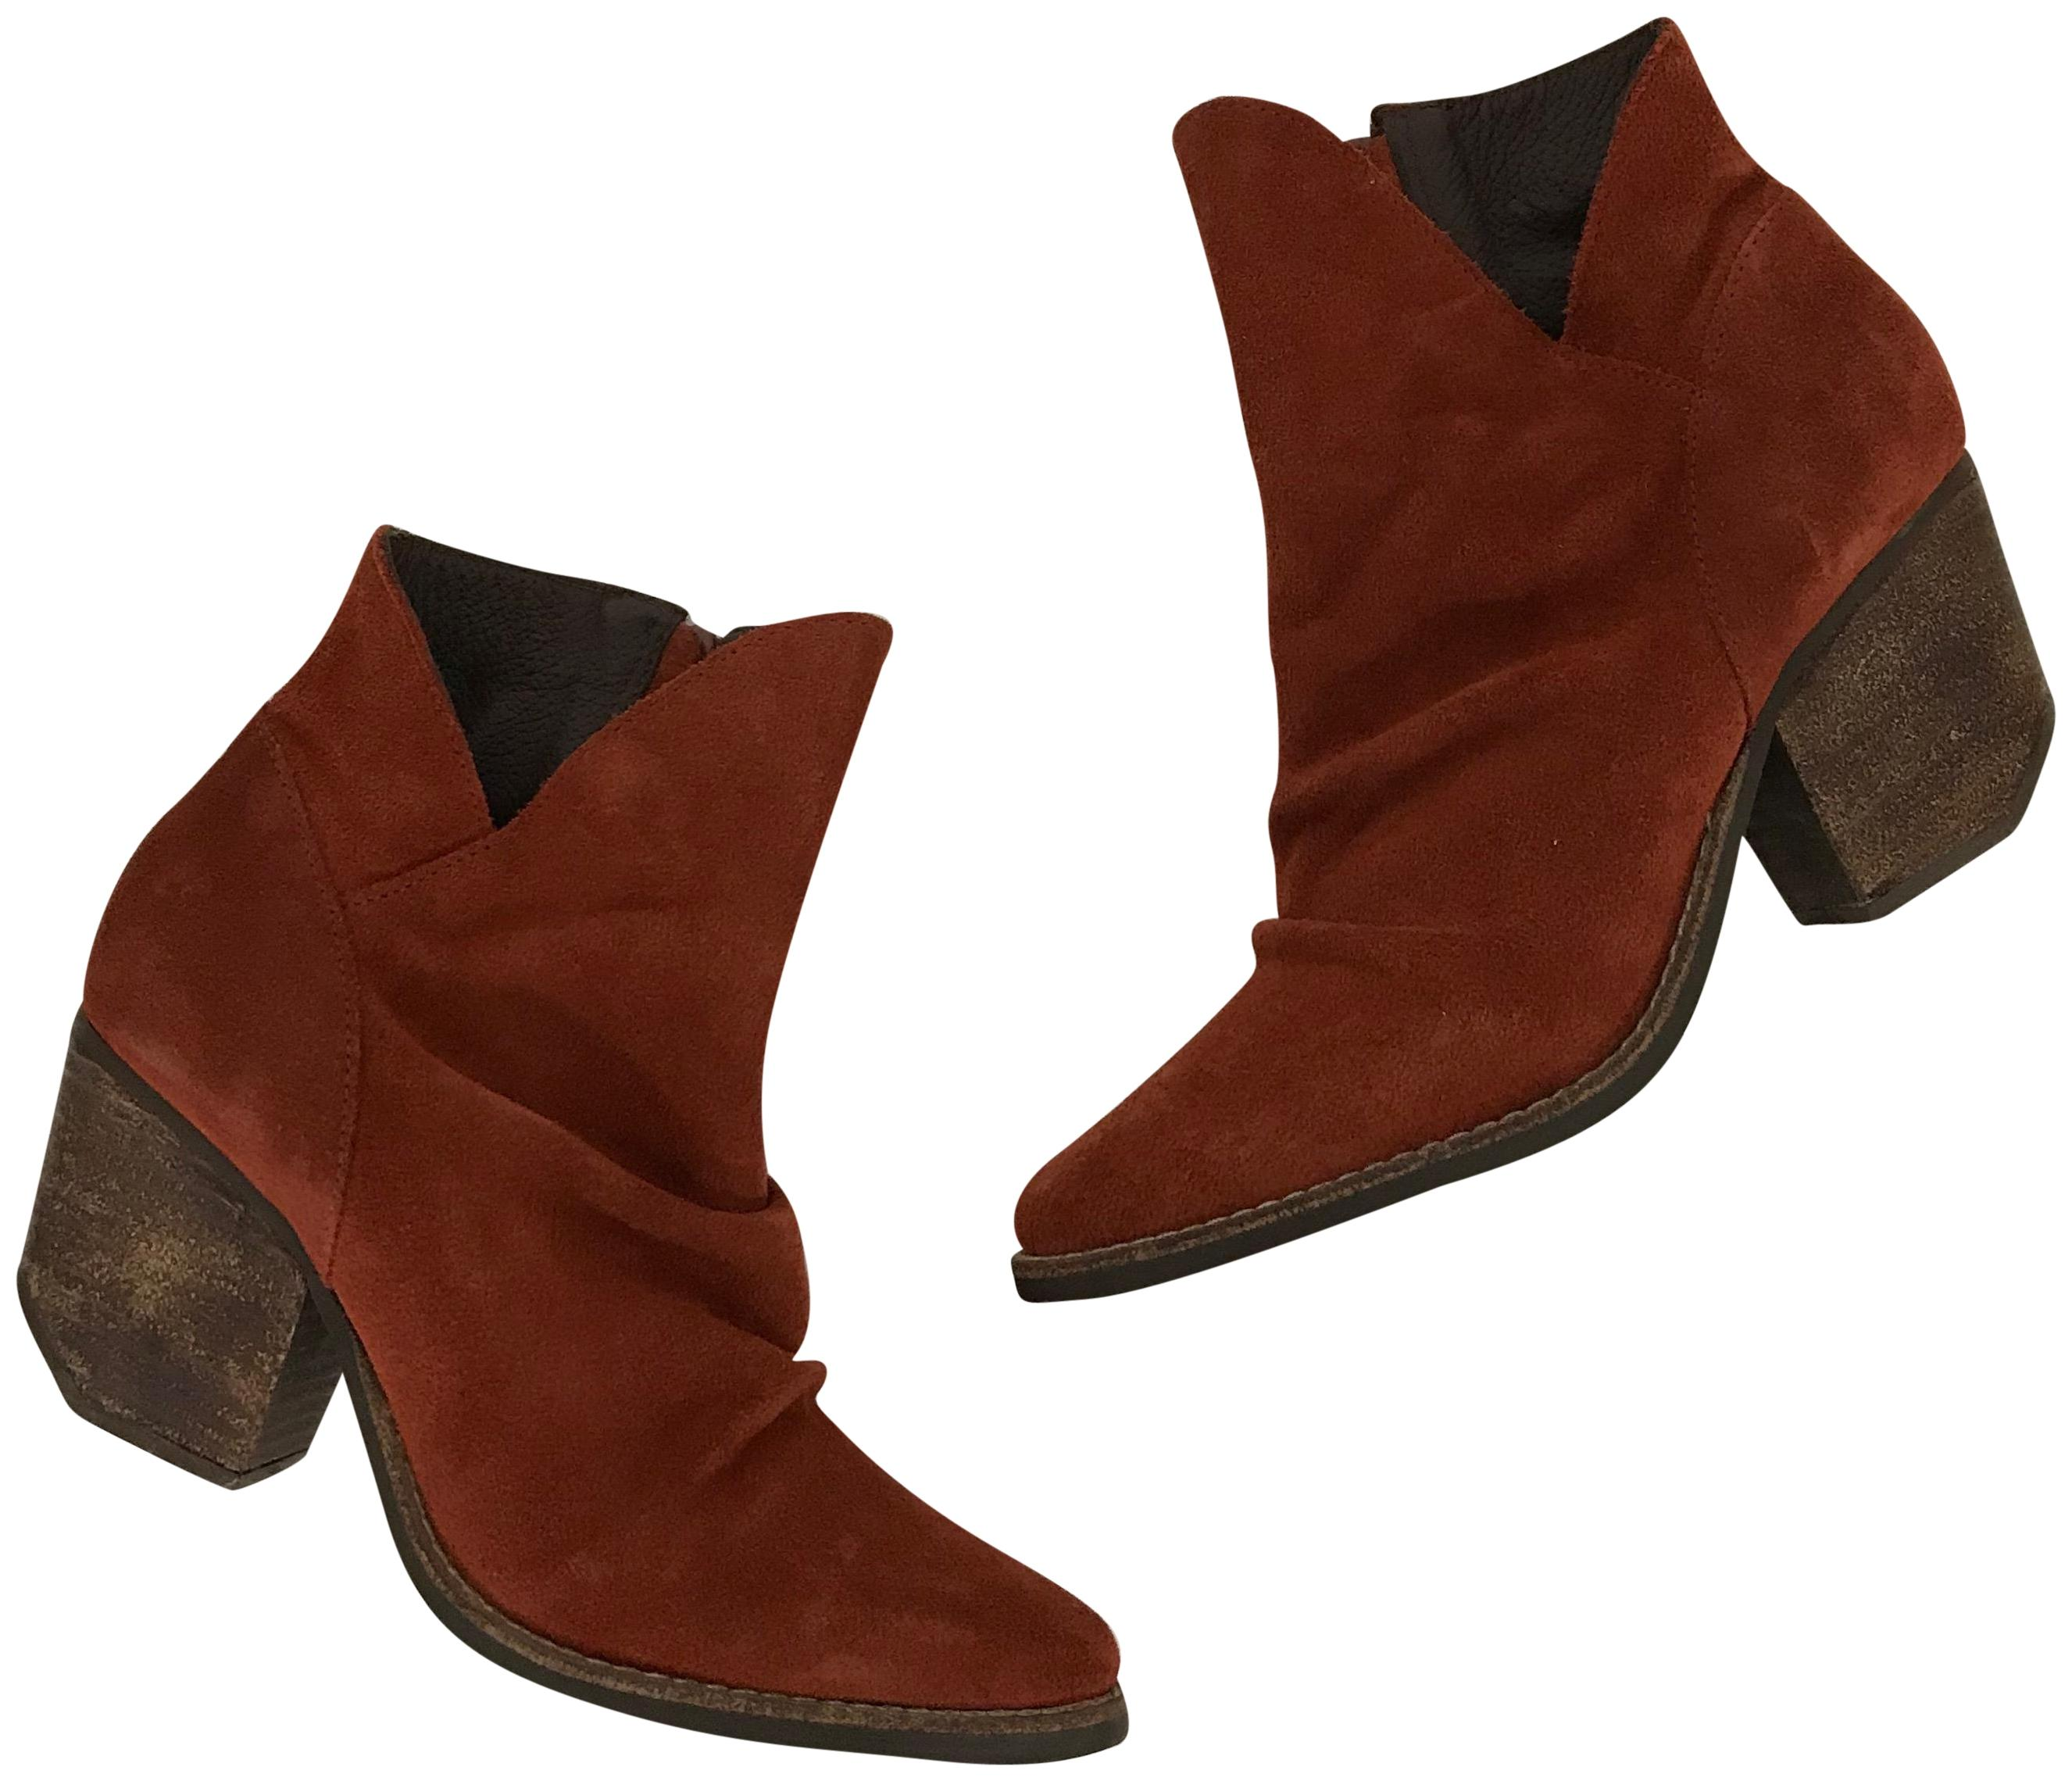 Amuse Society Red X Matisse Boots/Booties Boots/Booties Matisse Size US 7 Regular (M, B) f63d71